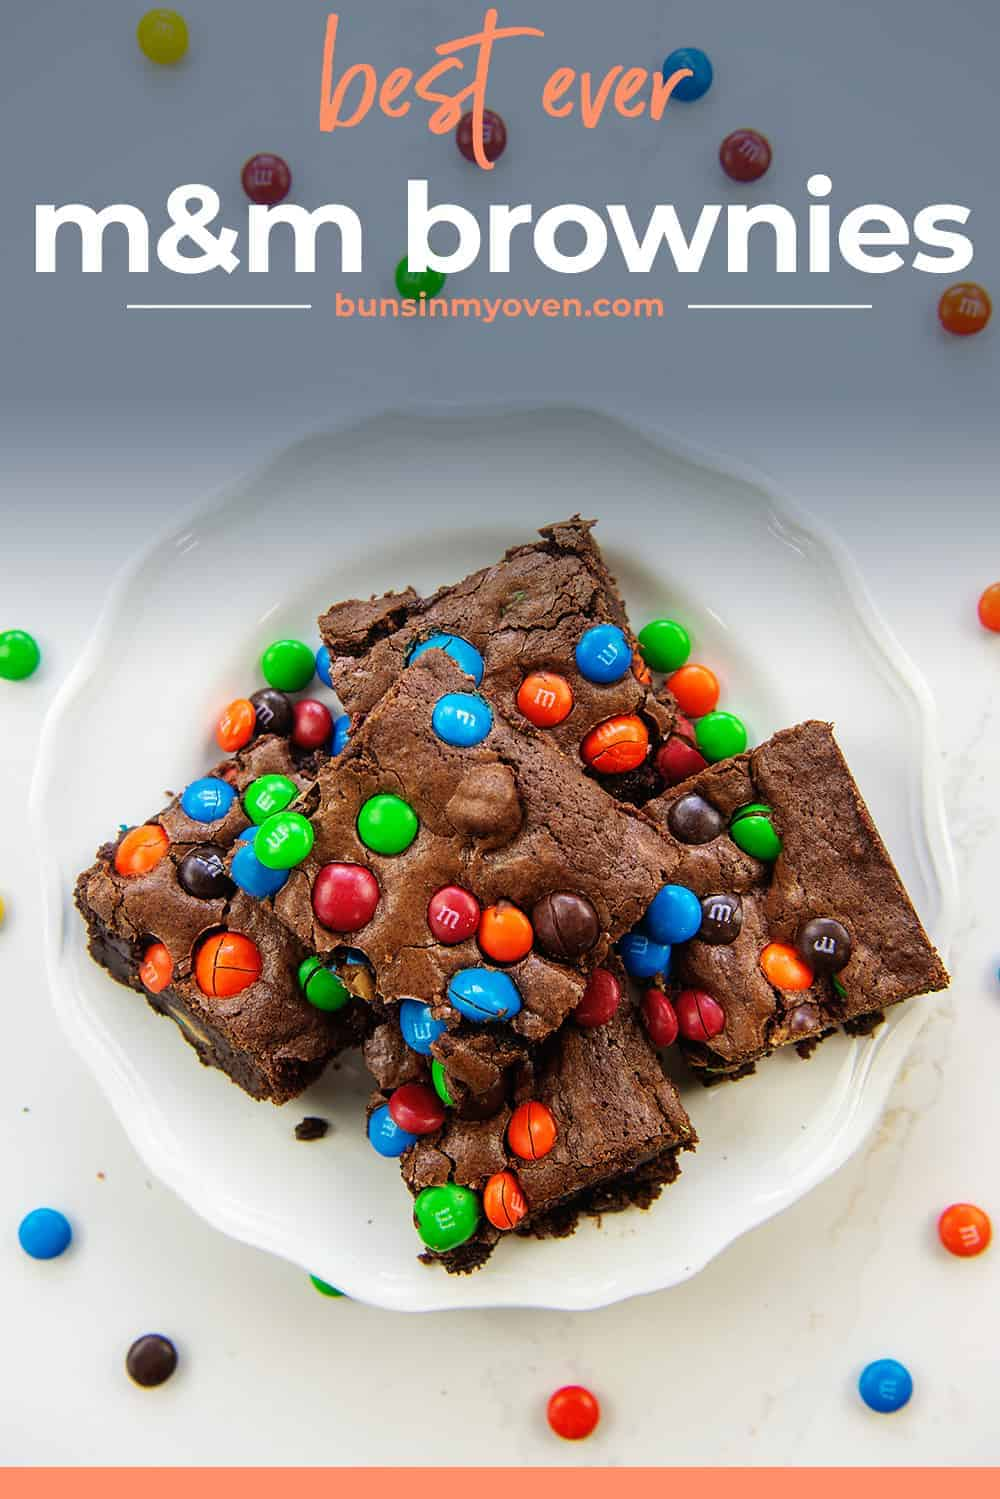 plate of brownies with m&m candies.